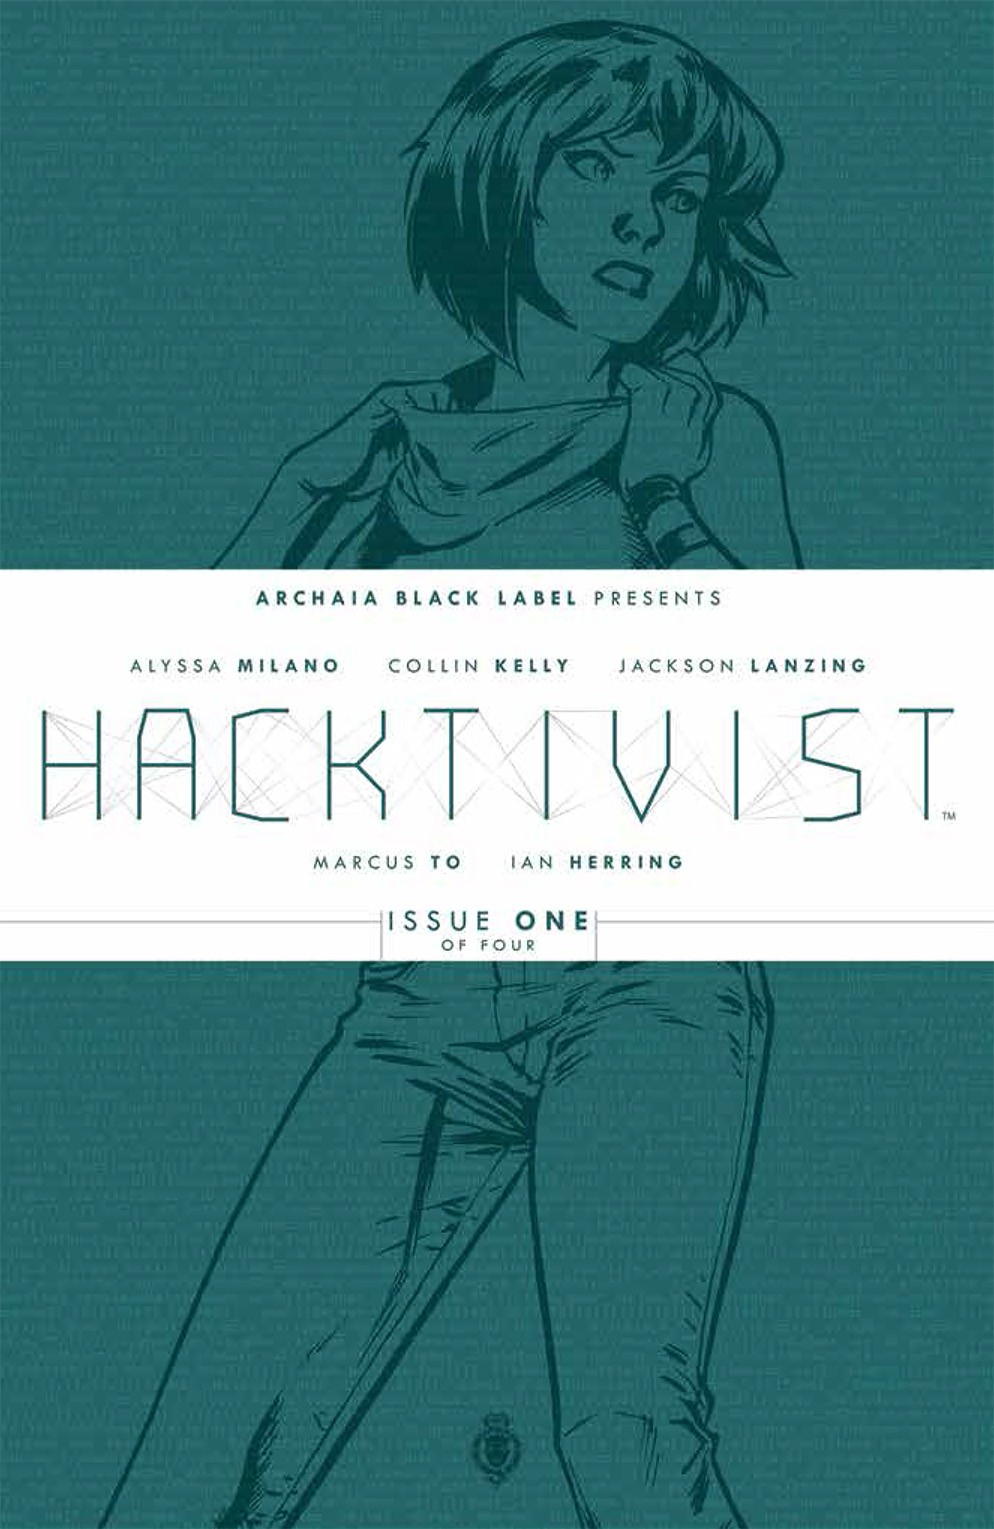 Drunk on Comics Special Edition: Hacktivist Interview